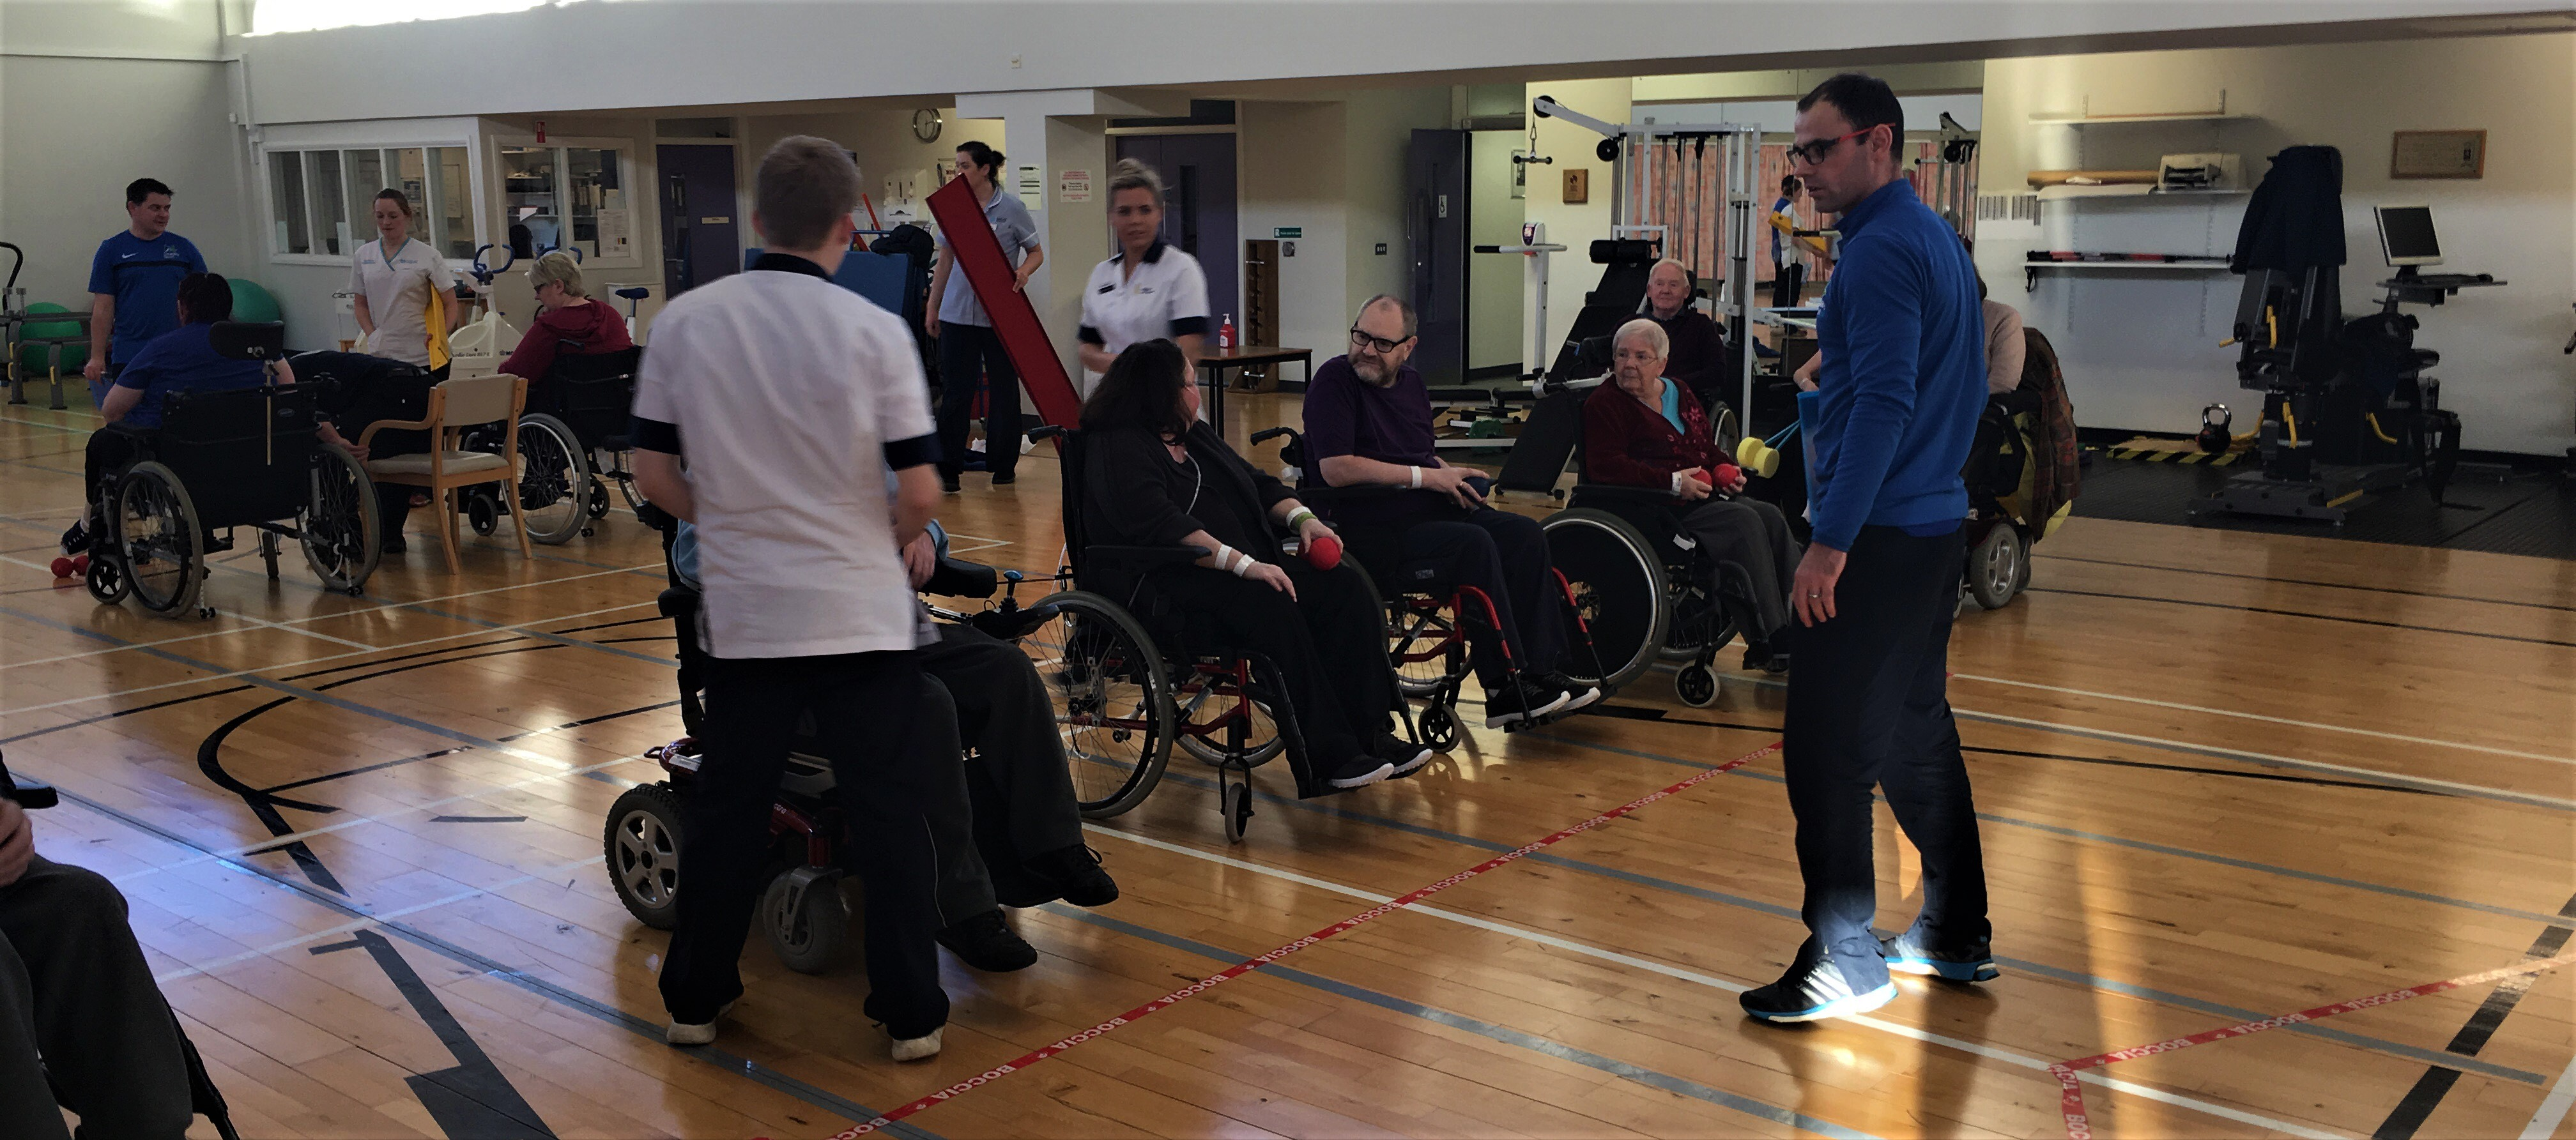 A group of people lined up to play boccia